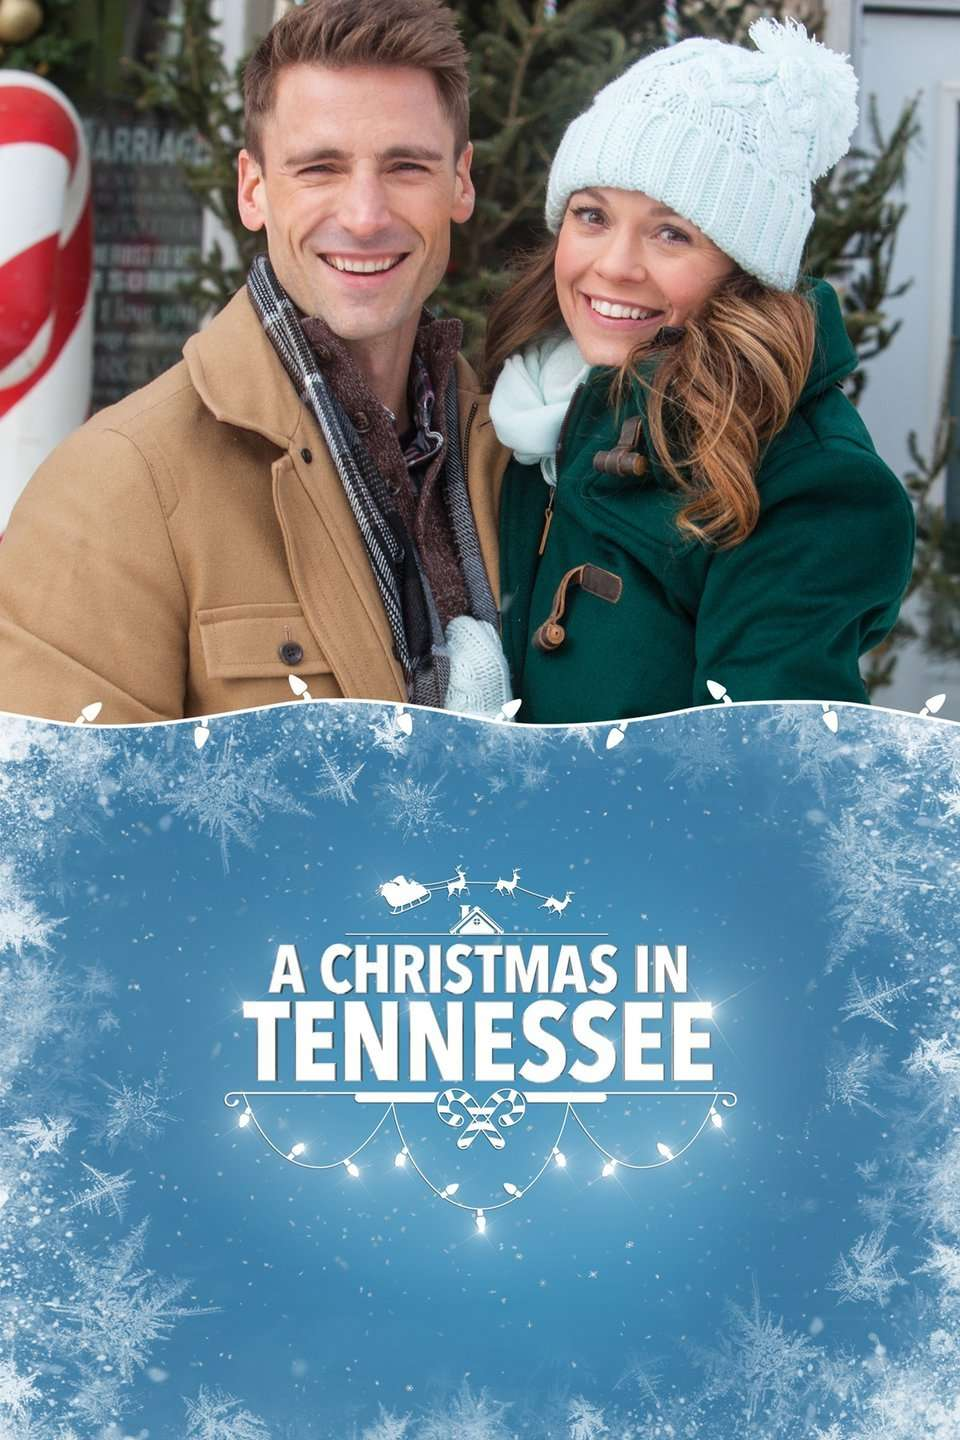 A Christmas in Tennessee kapak